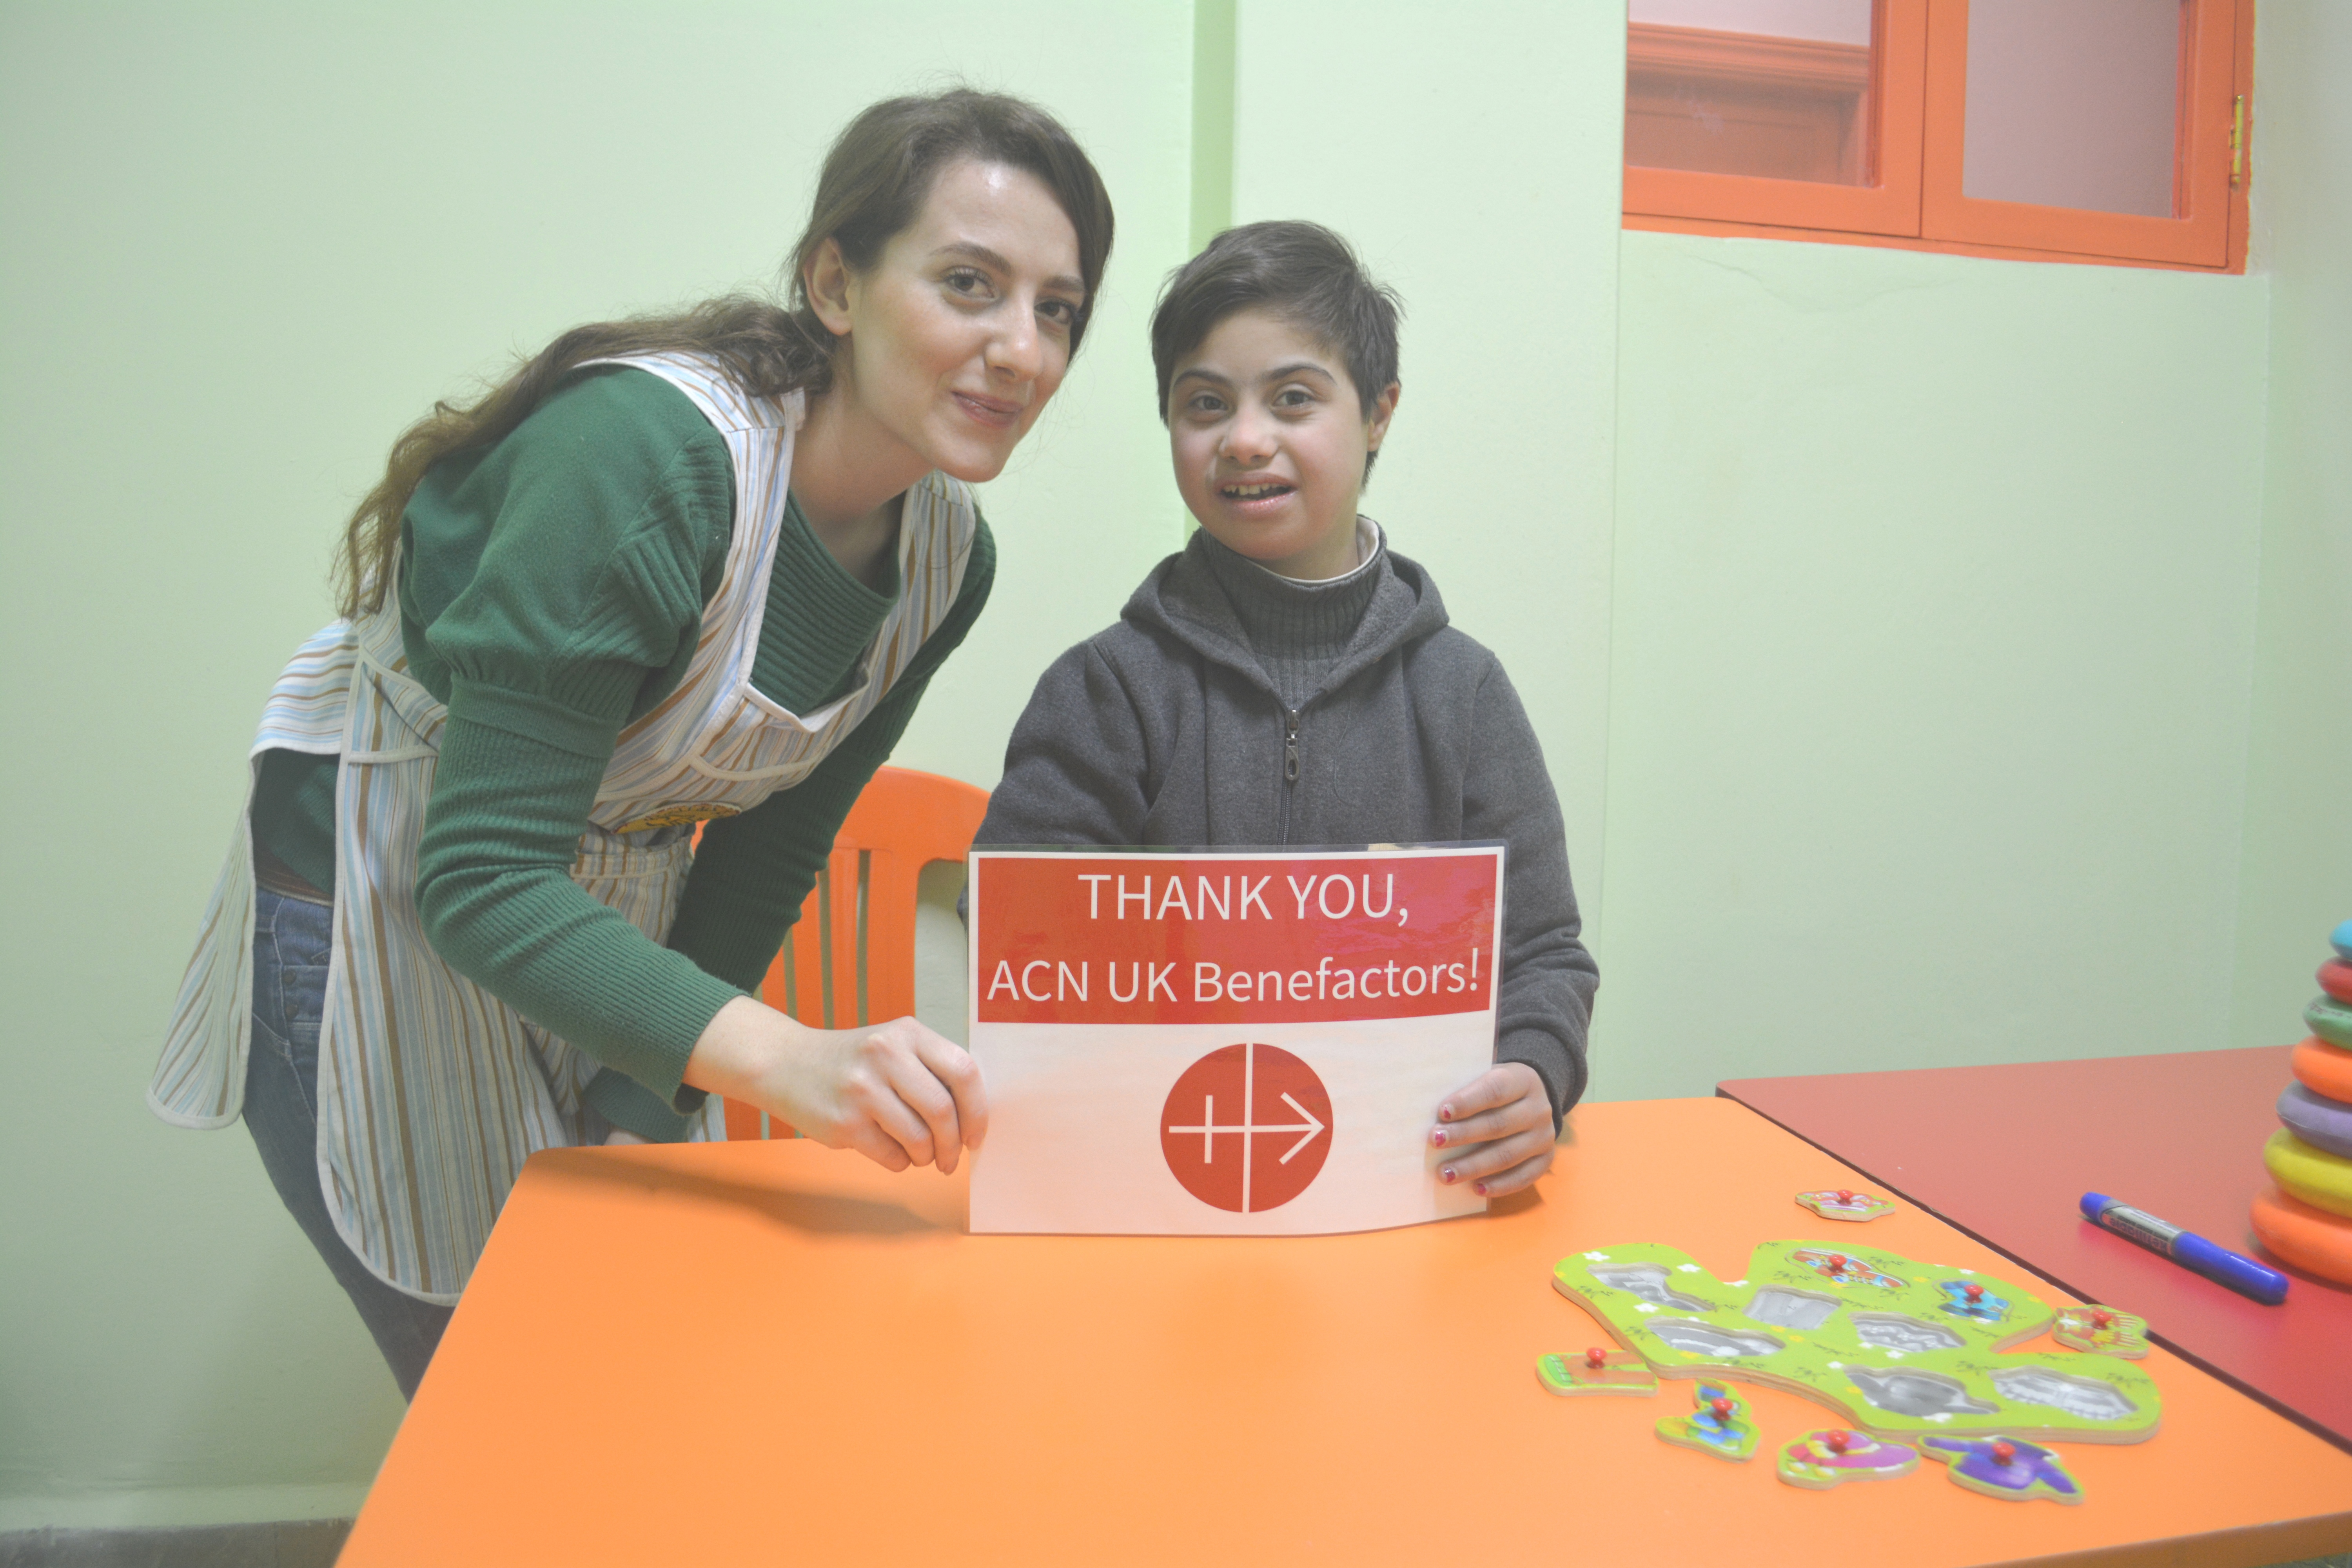 Supported by her teacher, a youngster at the Mustard Seed centre in Homs shows her appreciation